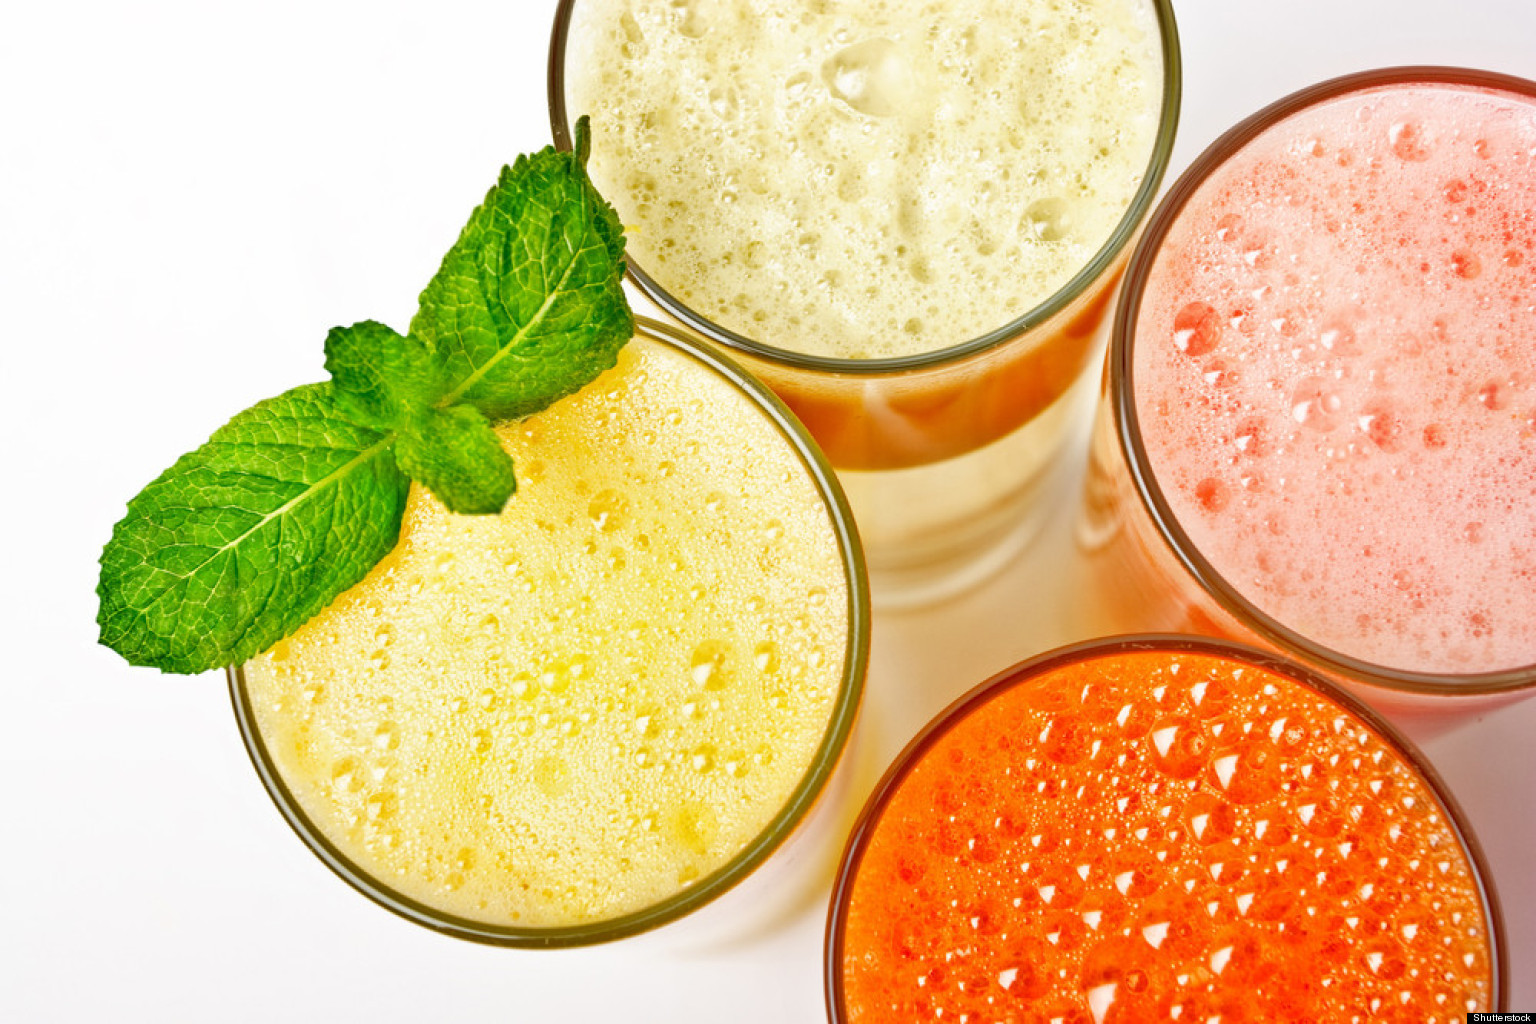 Most Healthy Smoothies  Healthiest Drinks The 23 Most Nutritious Drinks For Every